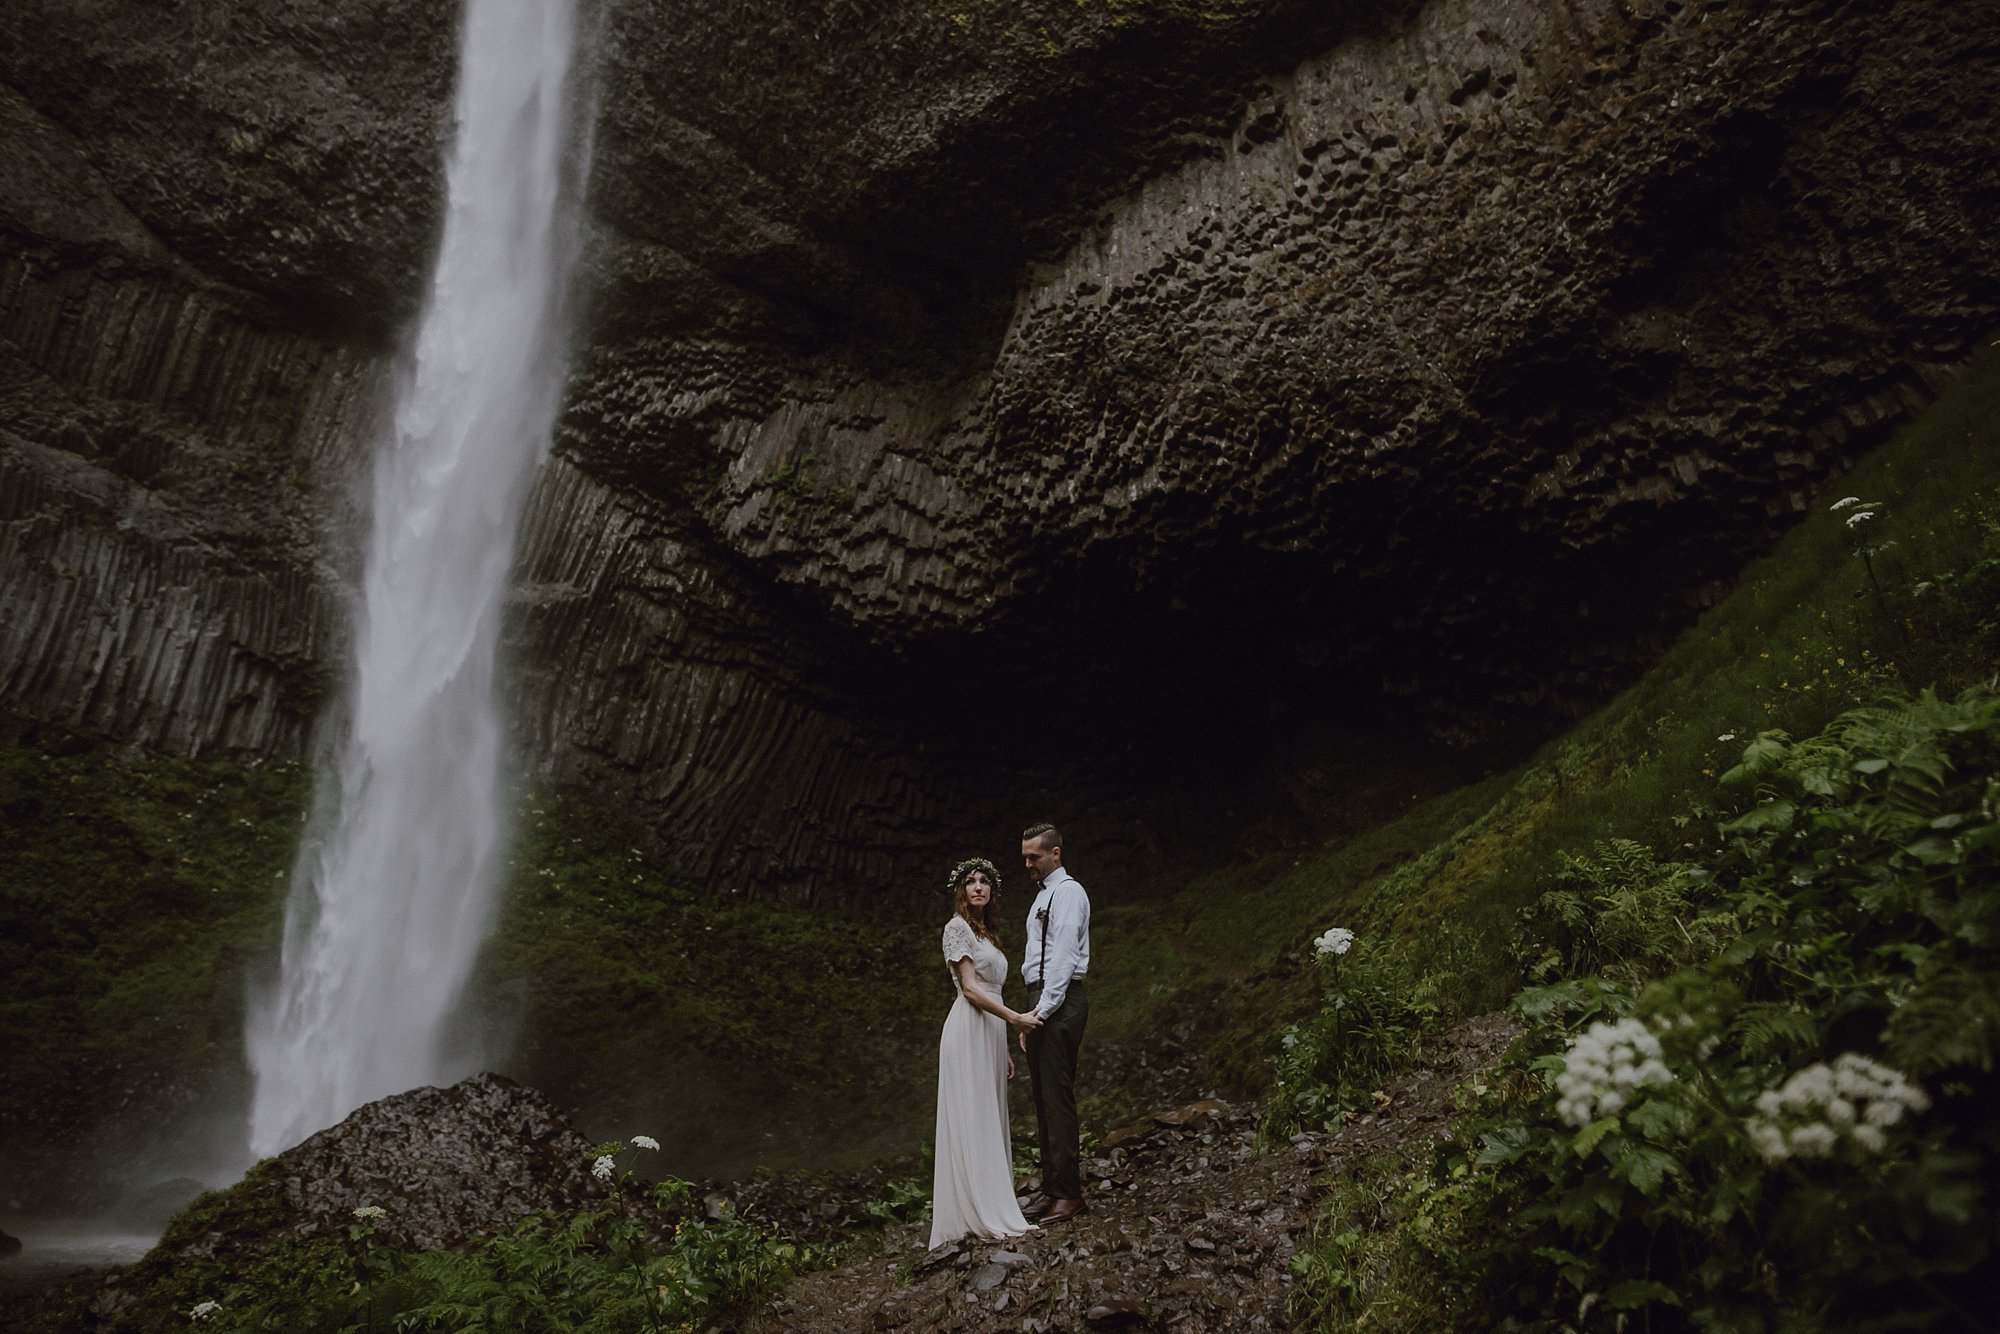 A photo of a bride and groom in front of a waterfall.